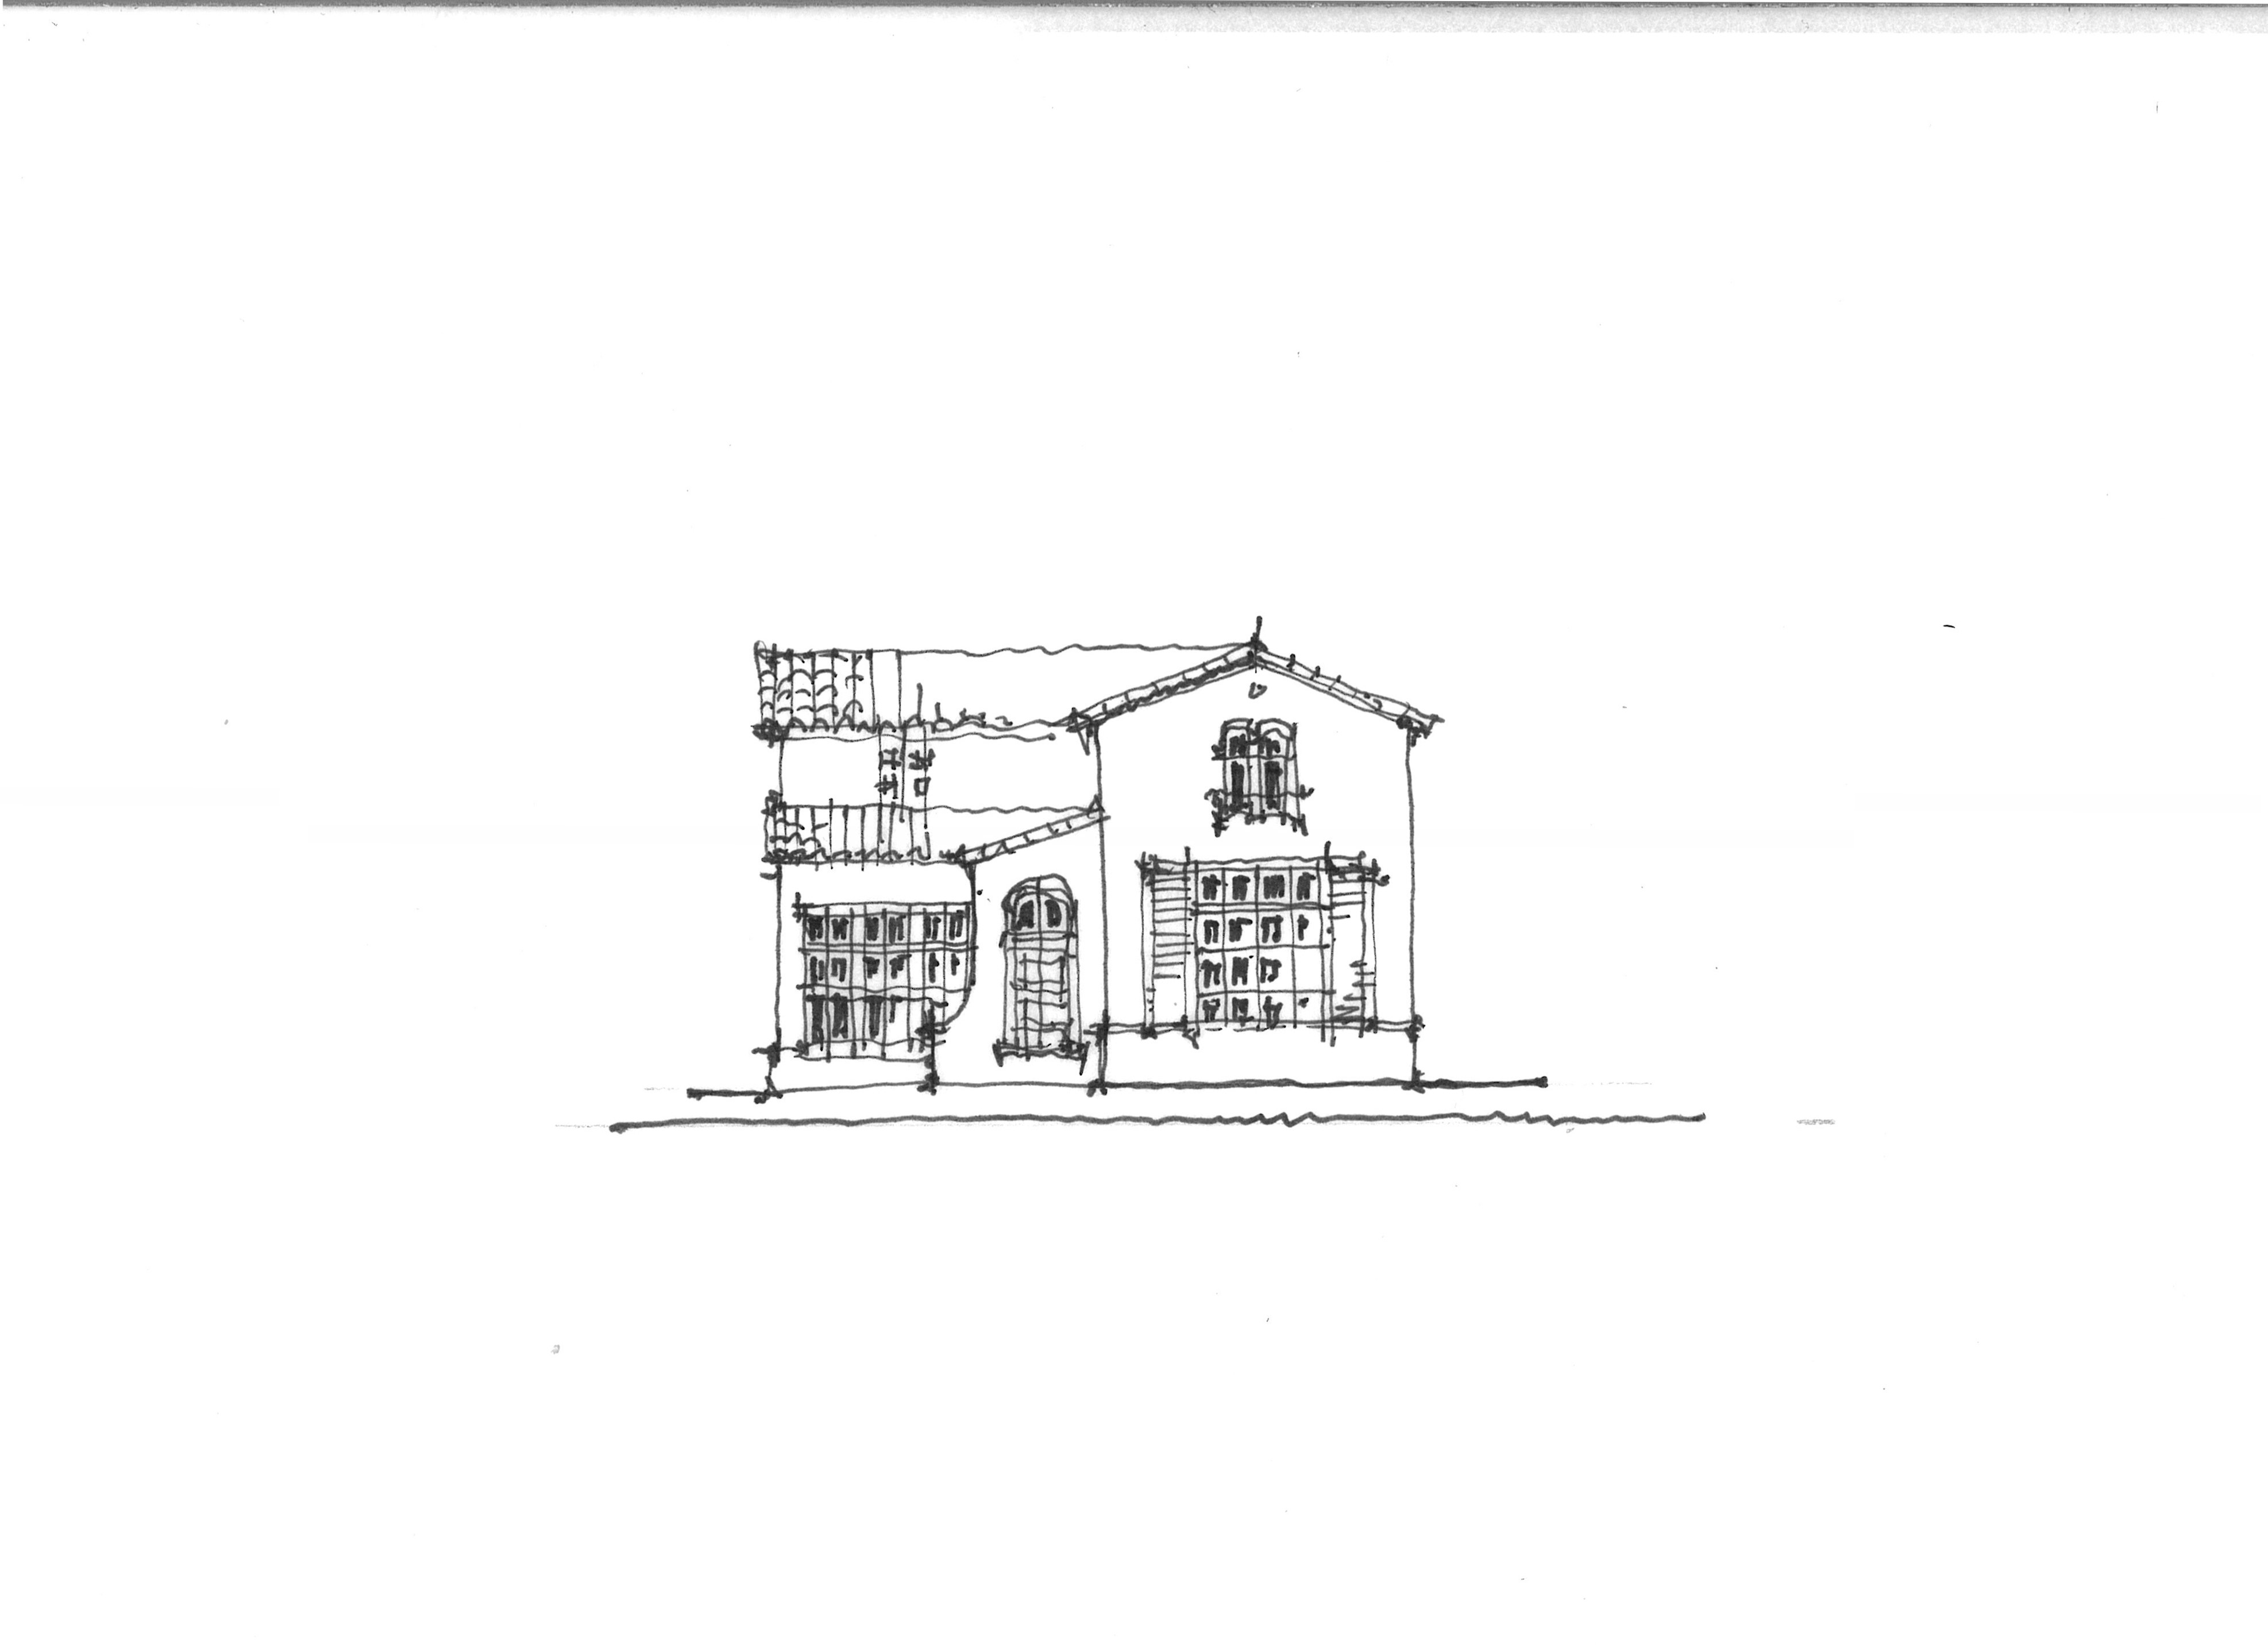 House Plans: Exemplifies Spanish Colonial Design